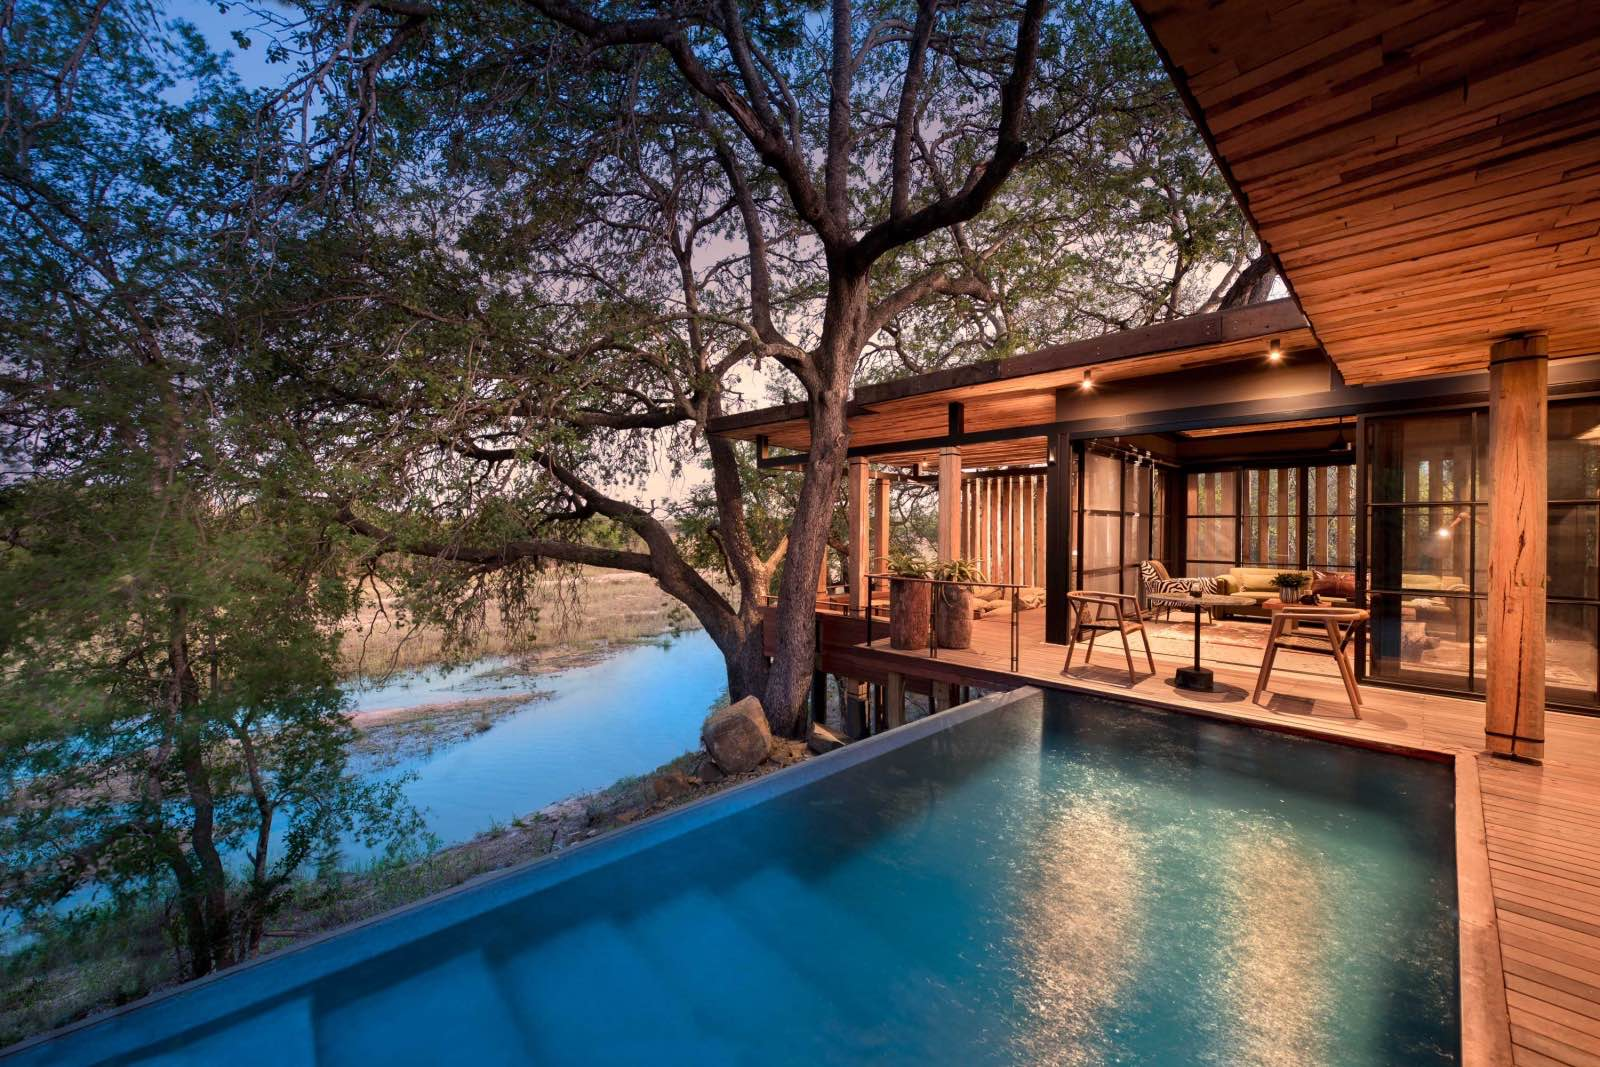 A Tengile suite with private lap pool and a view of the river